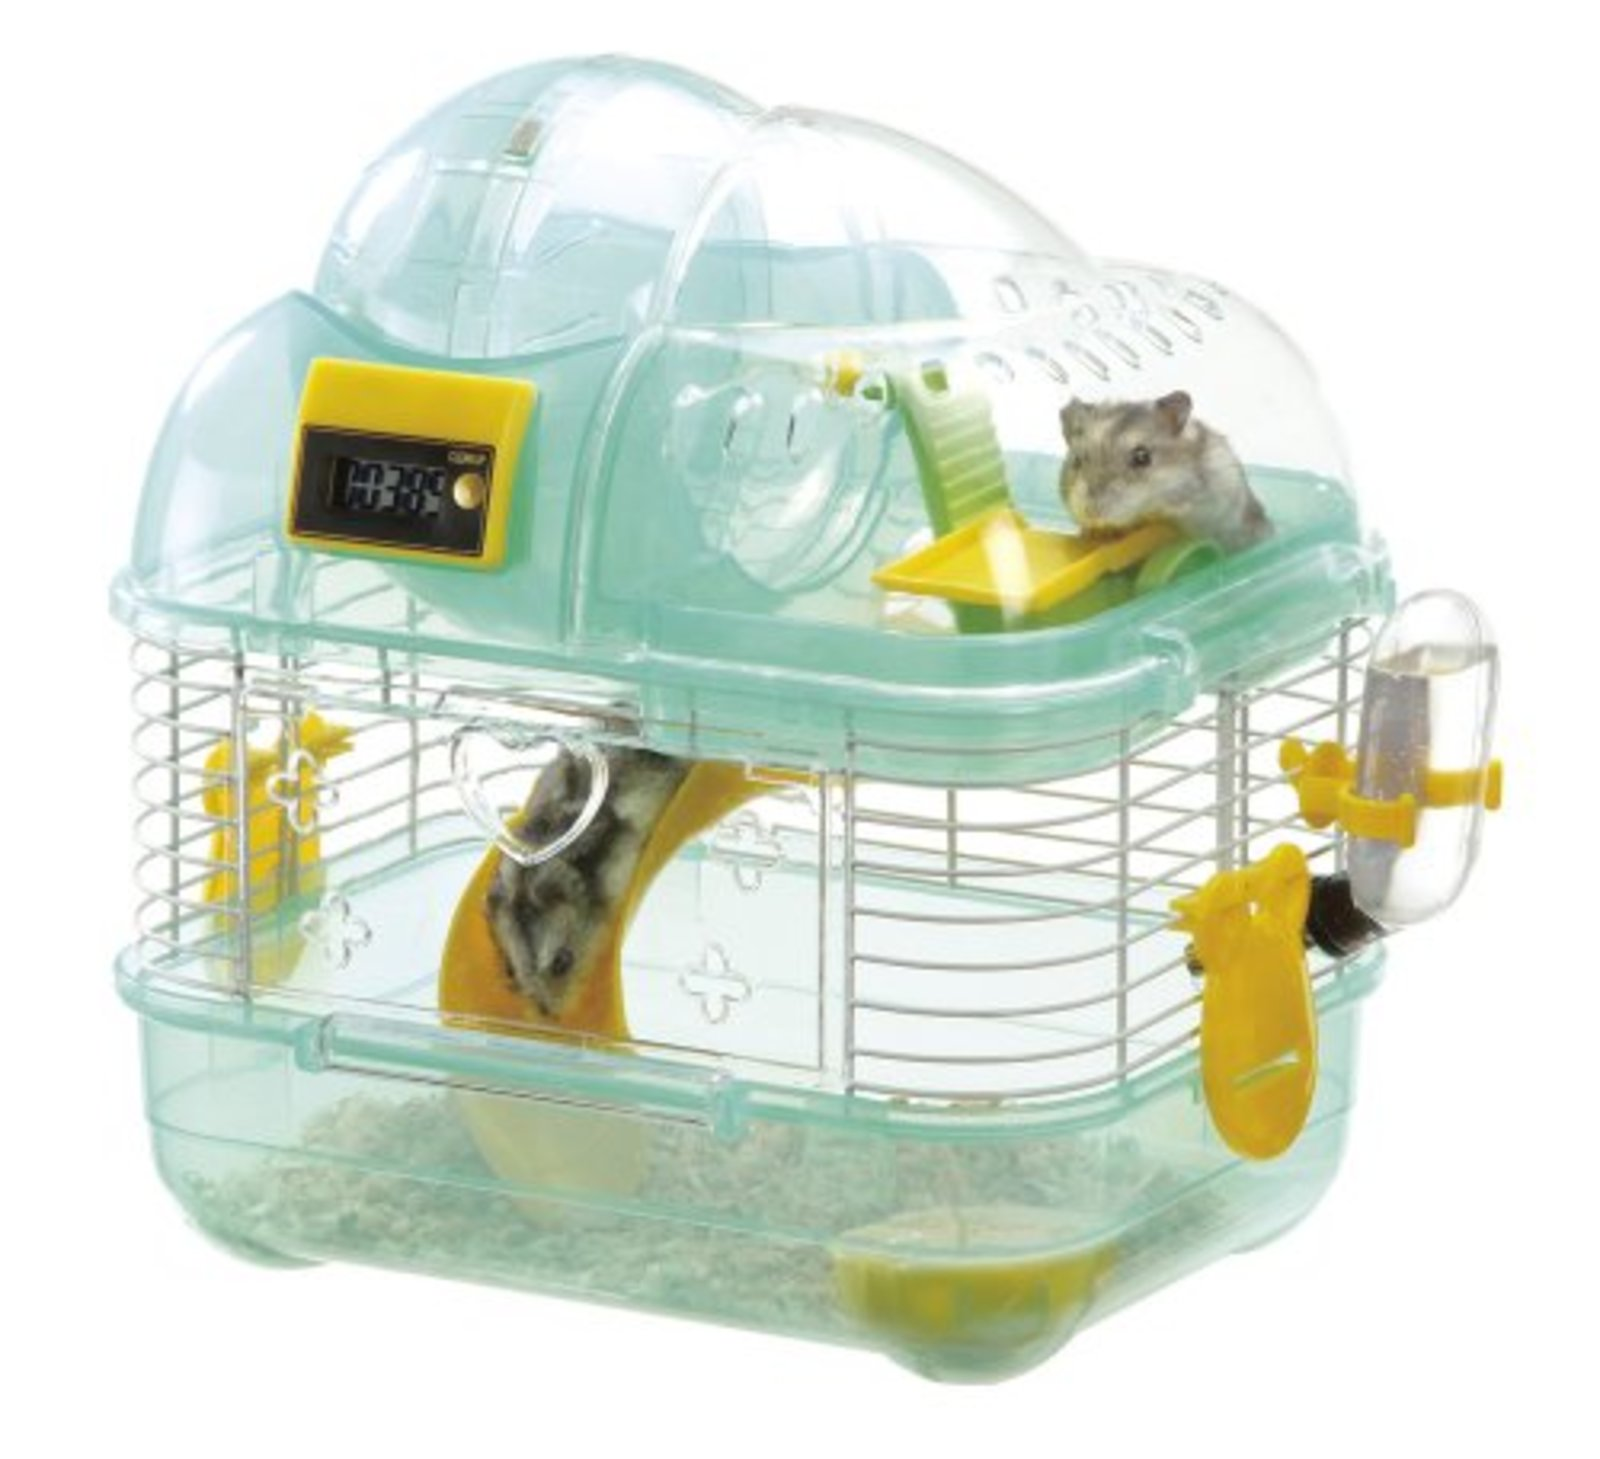 Hamster cage Slide Climb Play Round 2nd floor counter S F S w Tracking  Japan